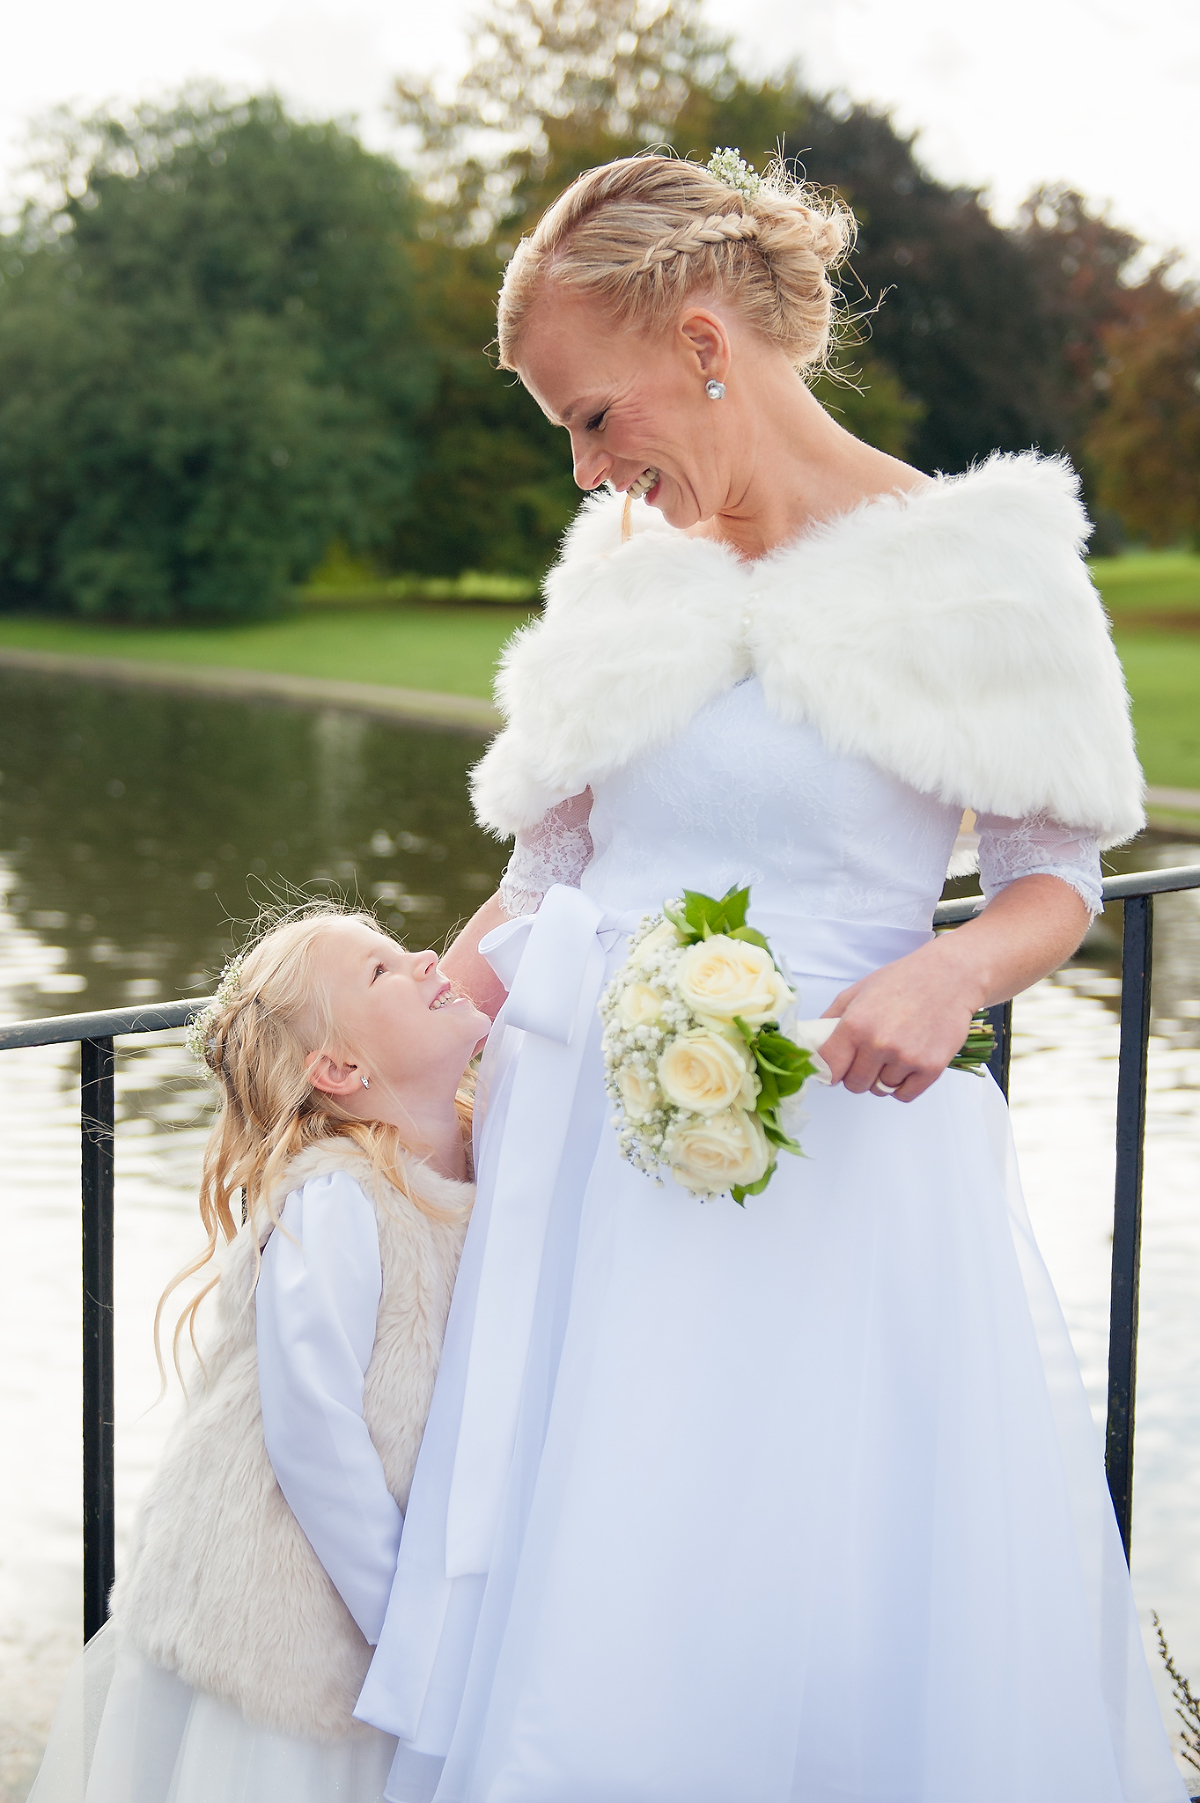 Wedding photography in St Albans